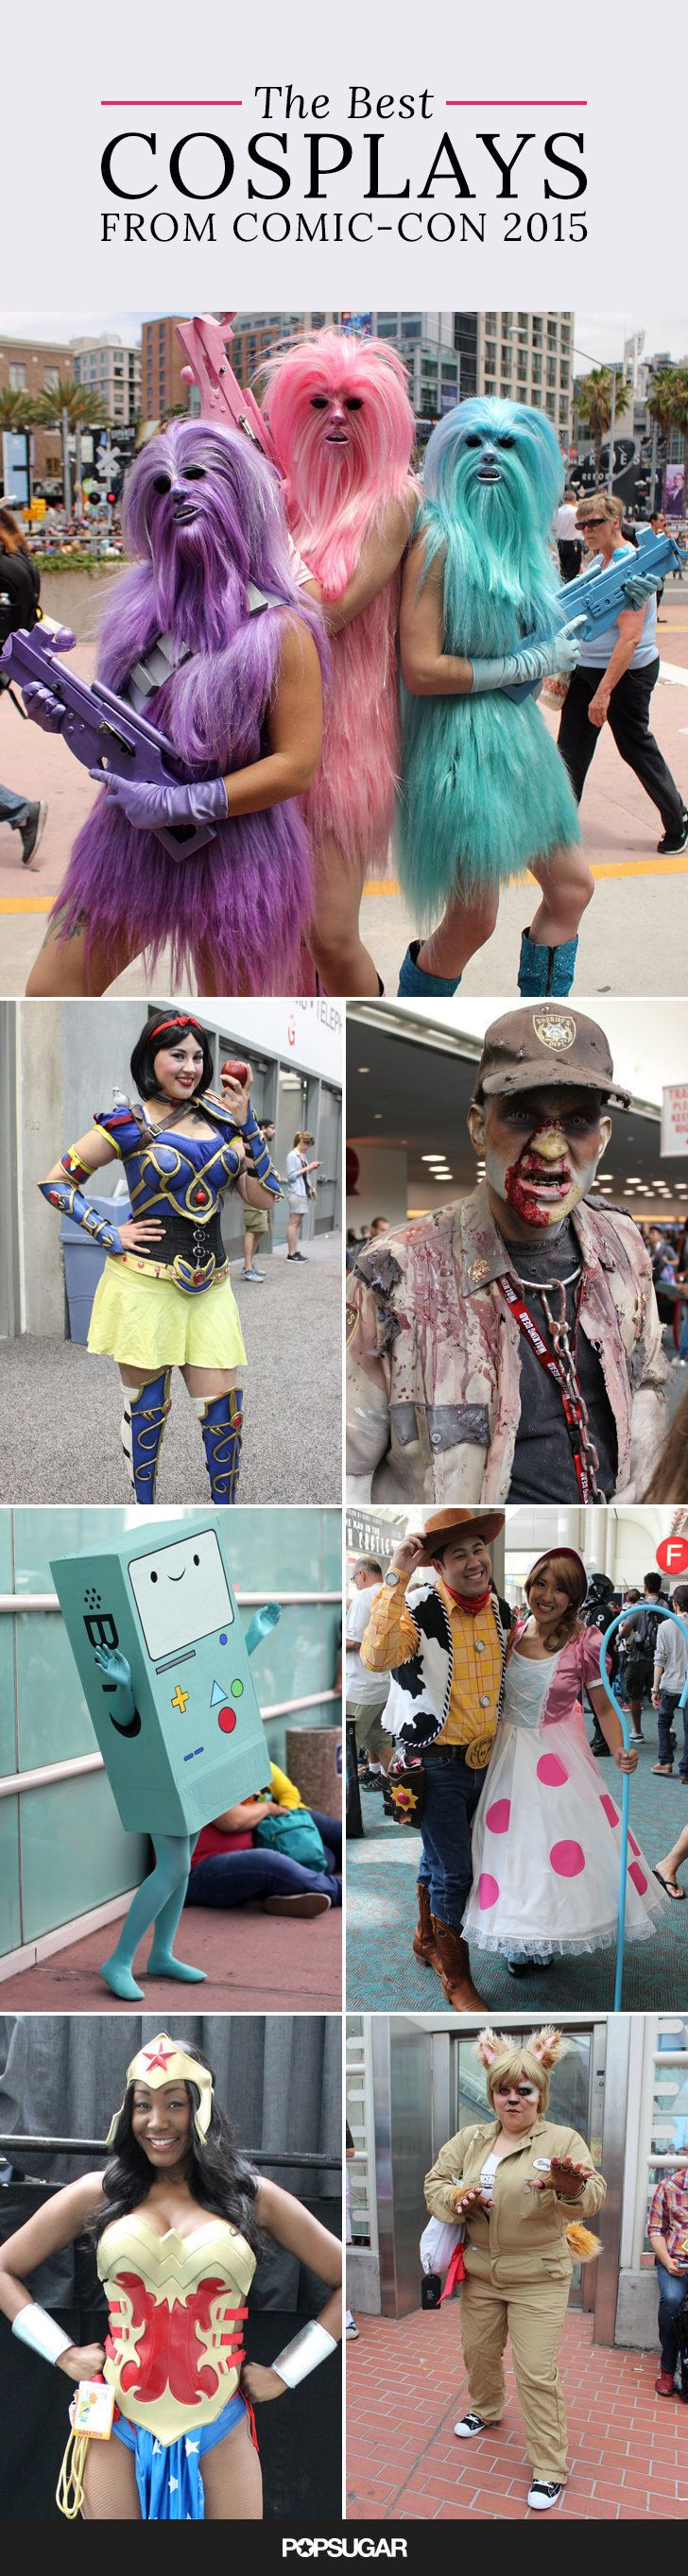 These are our favorite looks from Comic-Con 2015 in San Diego